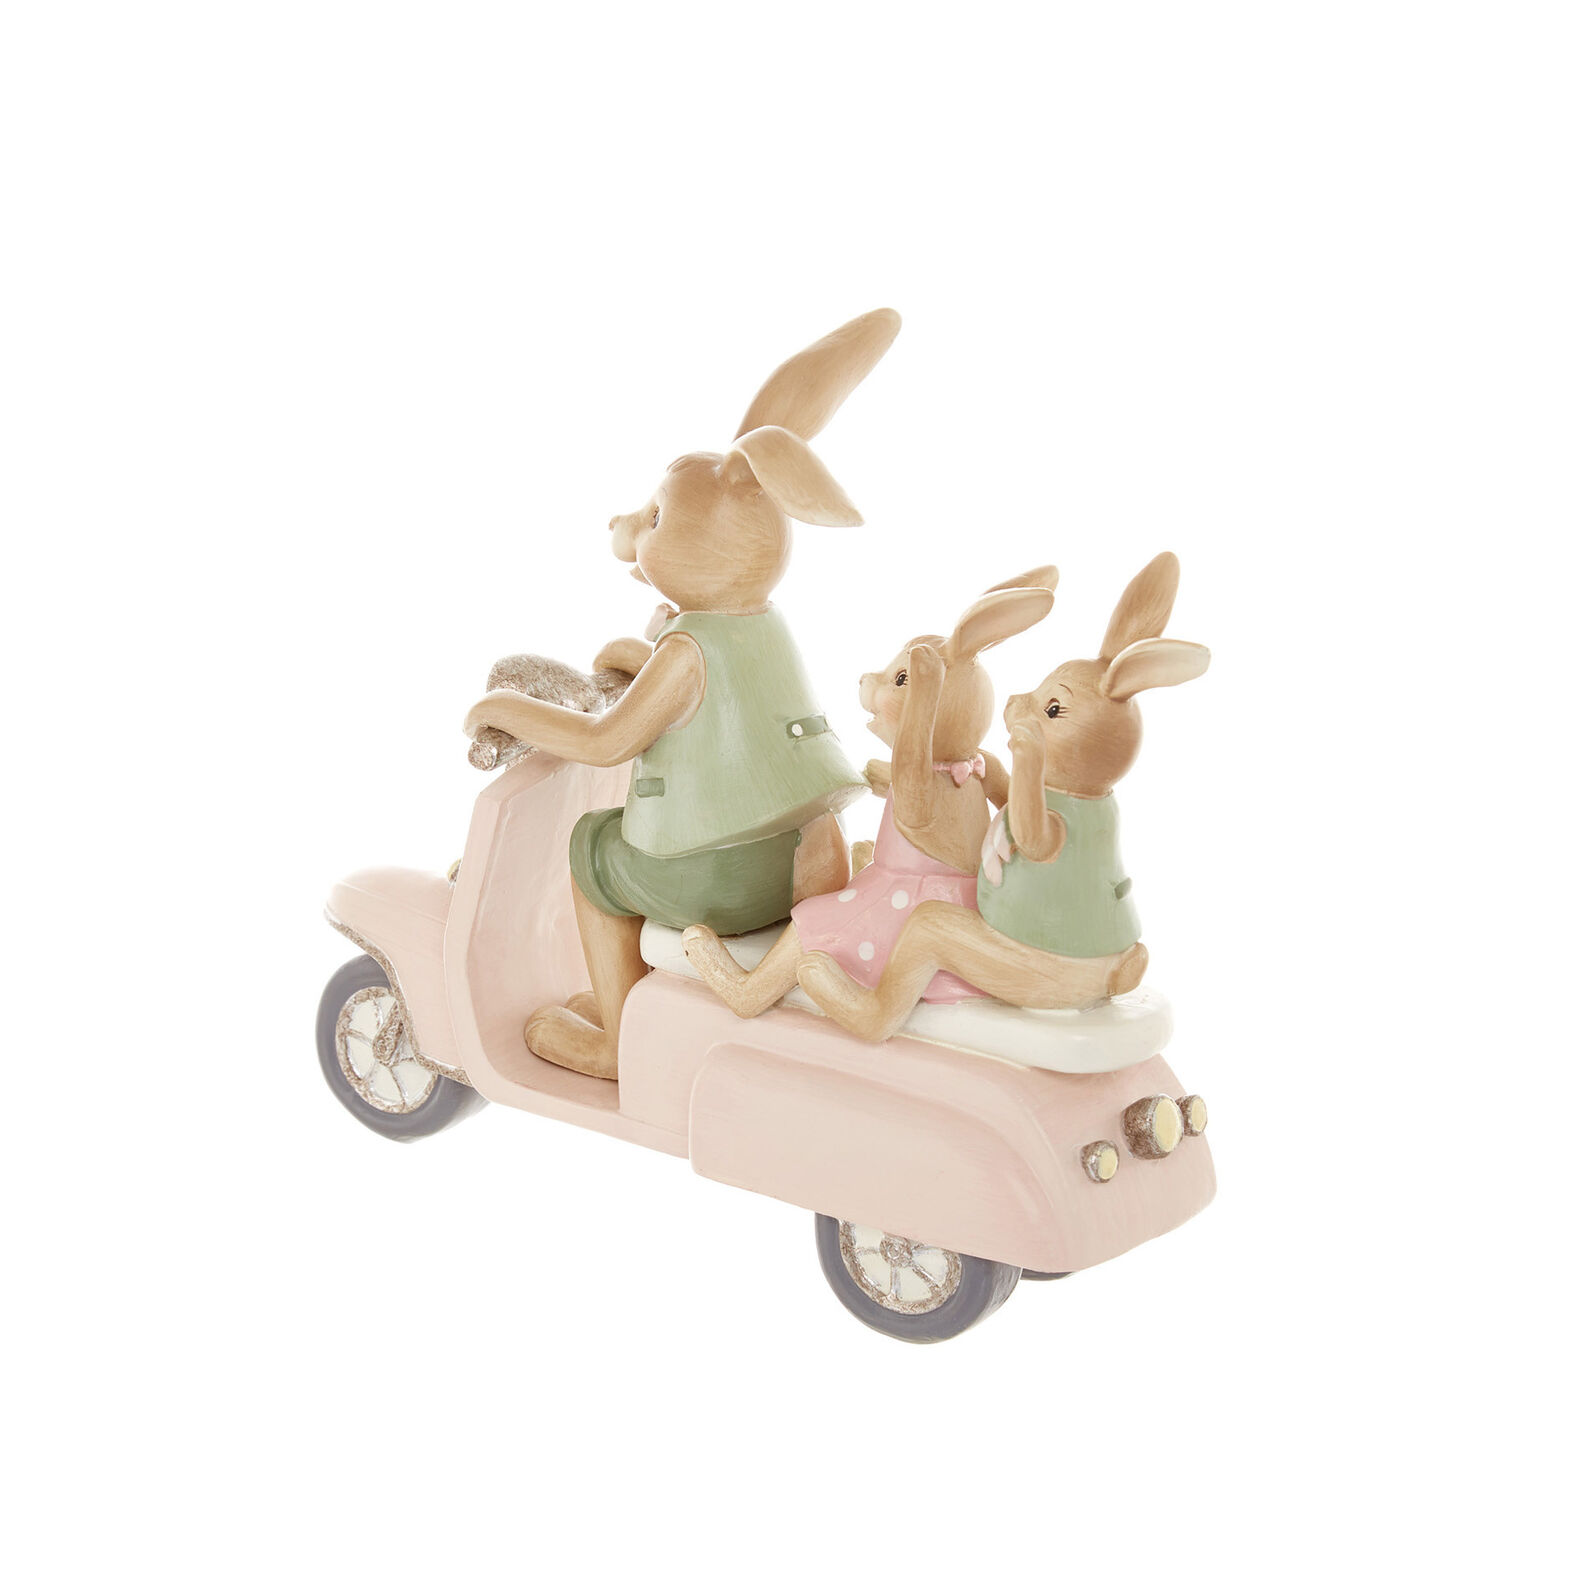 Hand-finished rabbits on Vespa